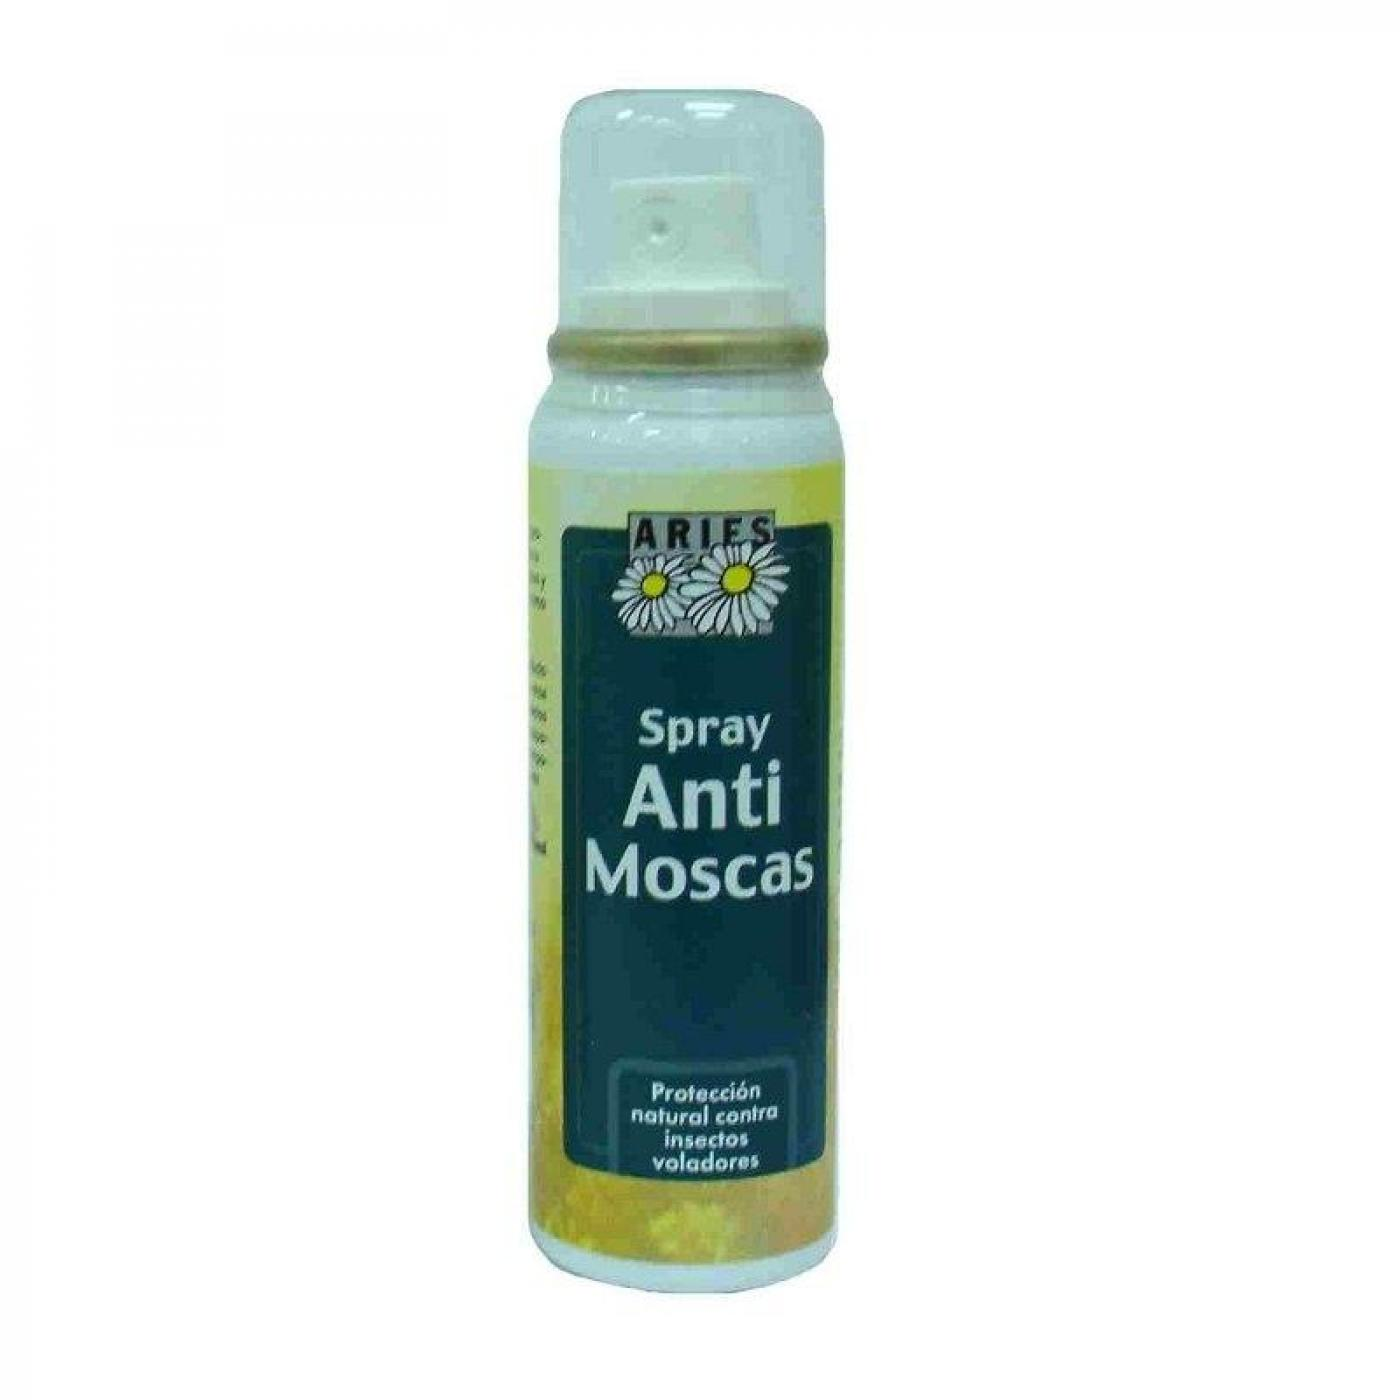 Spray anti mouches 200 ml par 5 95 sur planeta huerto for Anti mouches maison